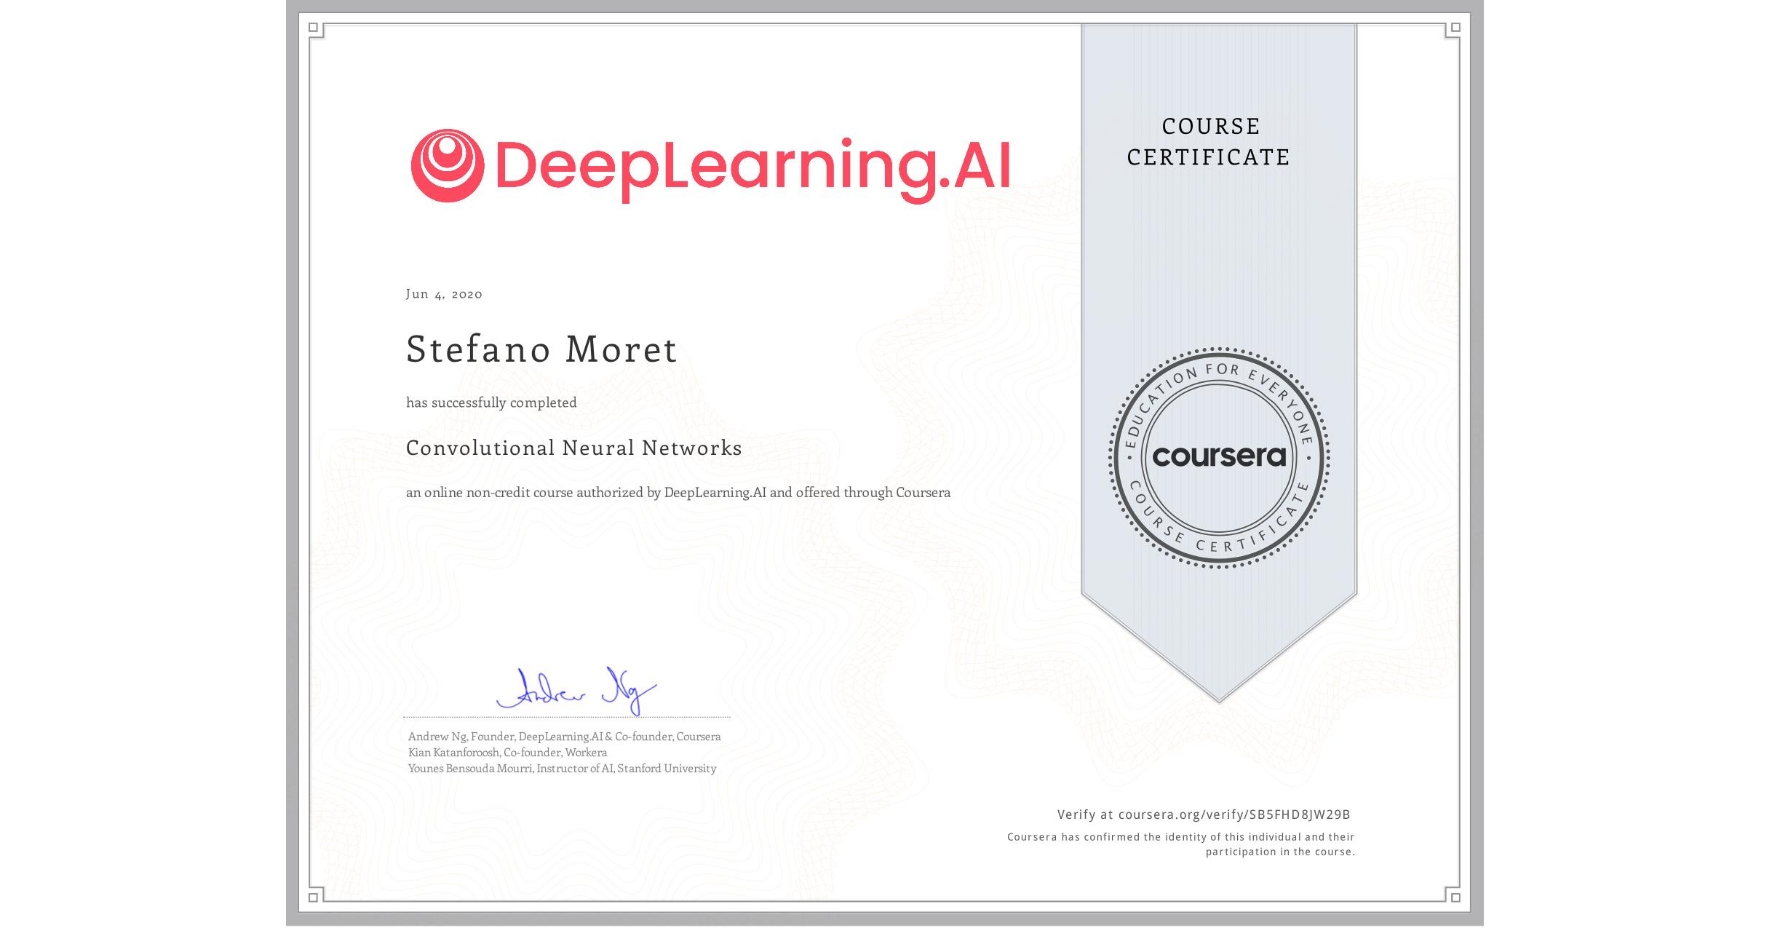 View certificate for Stefano Moret, Convolutional Neural Networks, an online non-credit course authorized by DeepLearning.AI and offered through Coursera